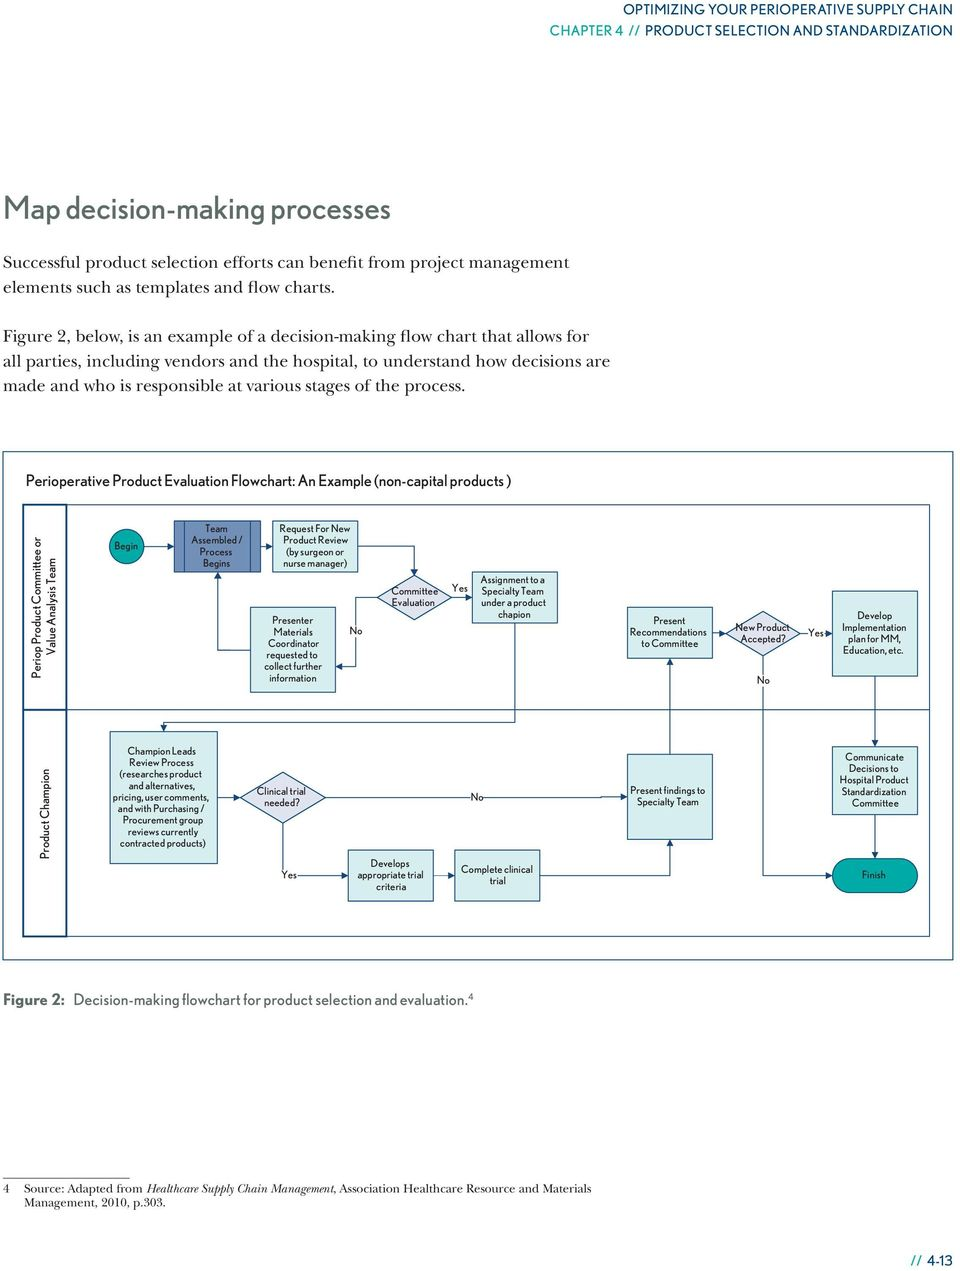 Figure 2, below, is an example of a decision-making flow chart that allows for all parties, including vendors and the hospital, to understand how decisions are made and who is responsible at various